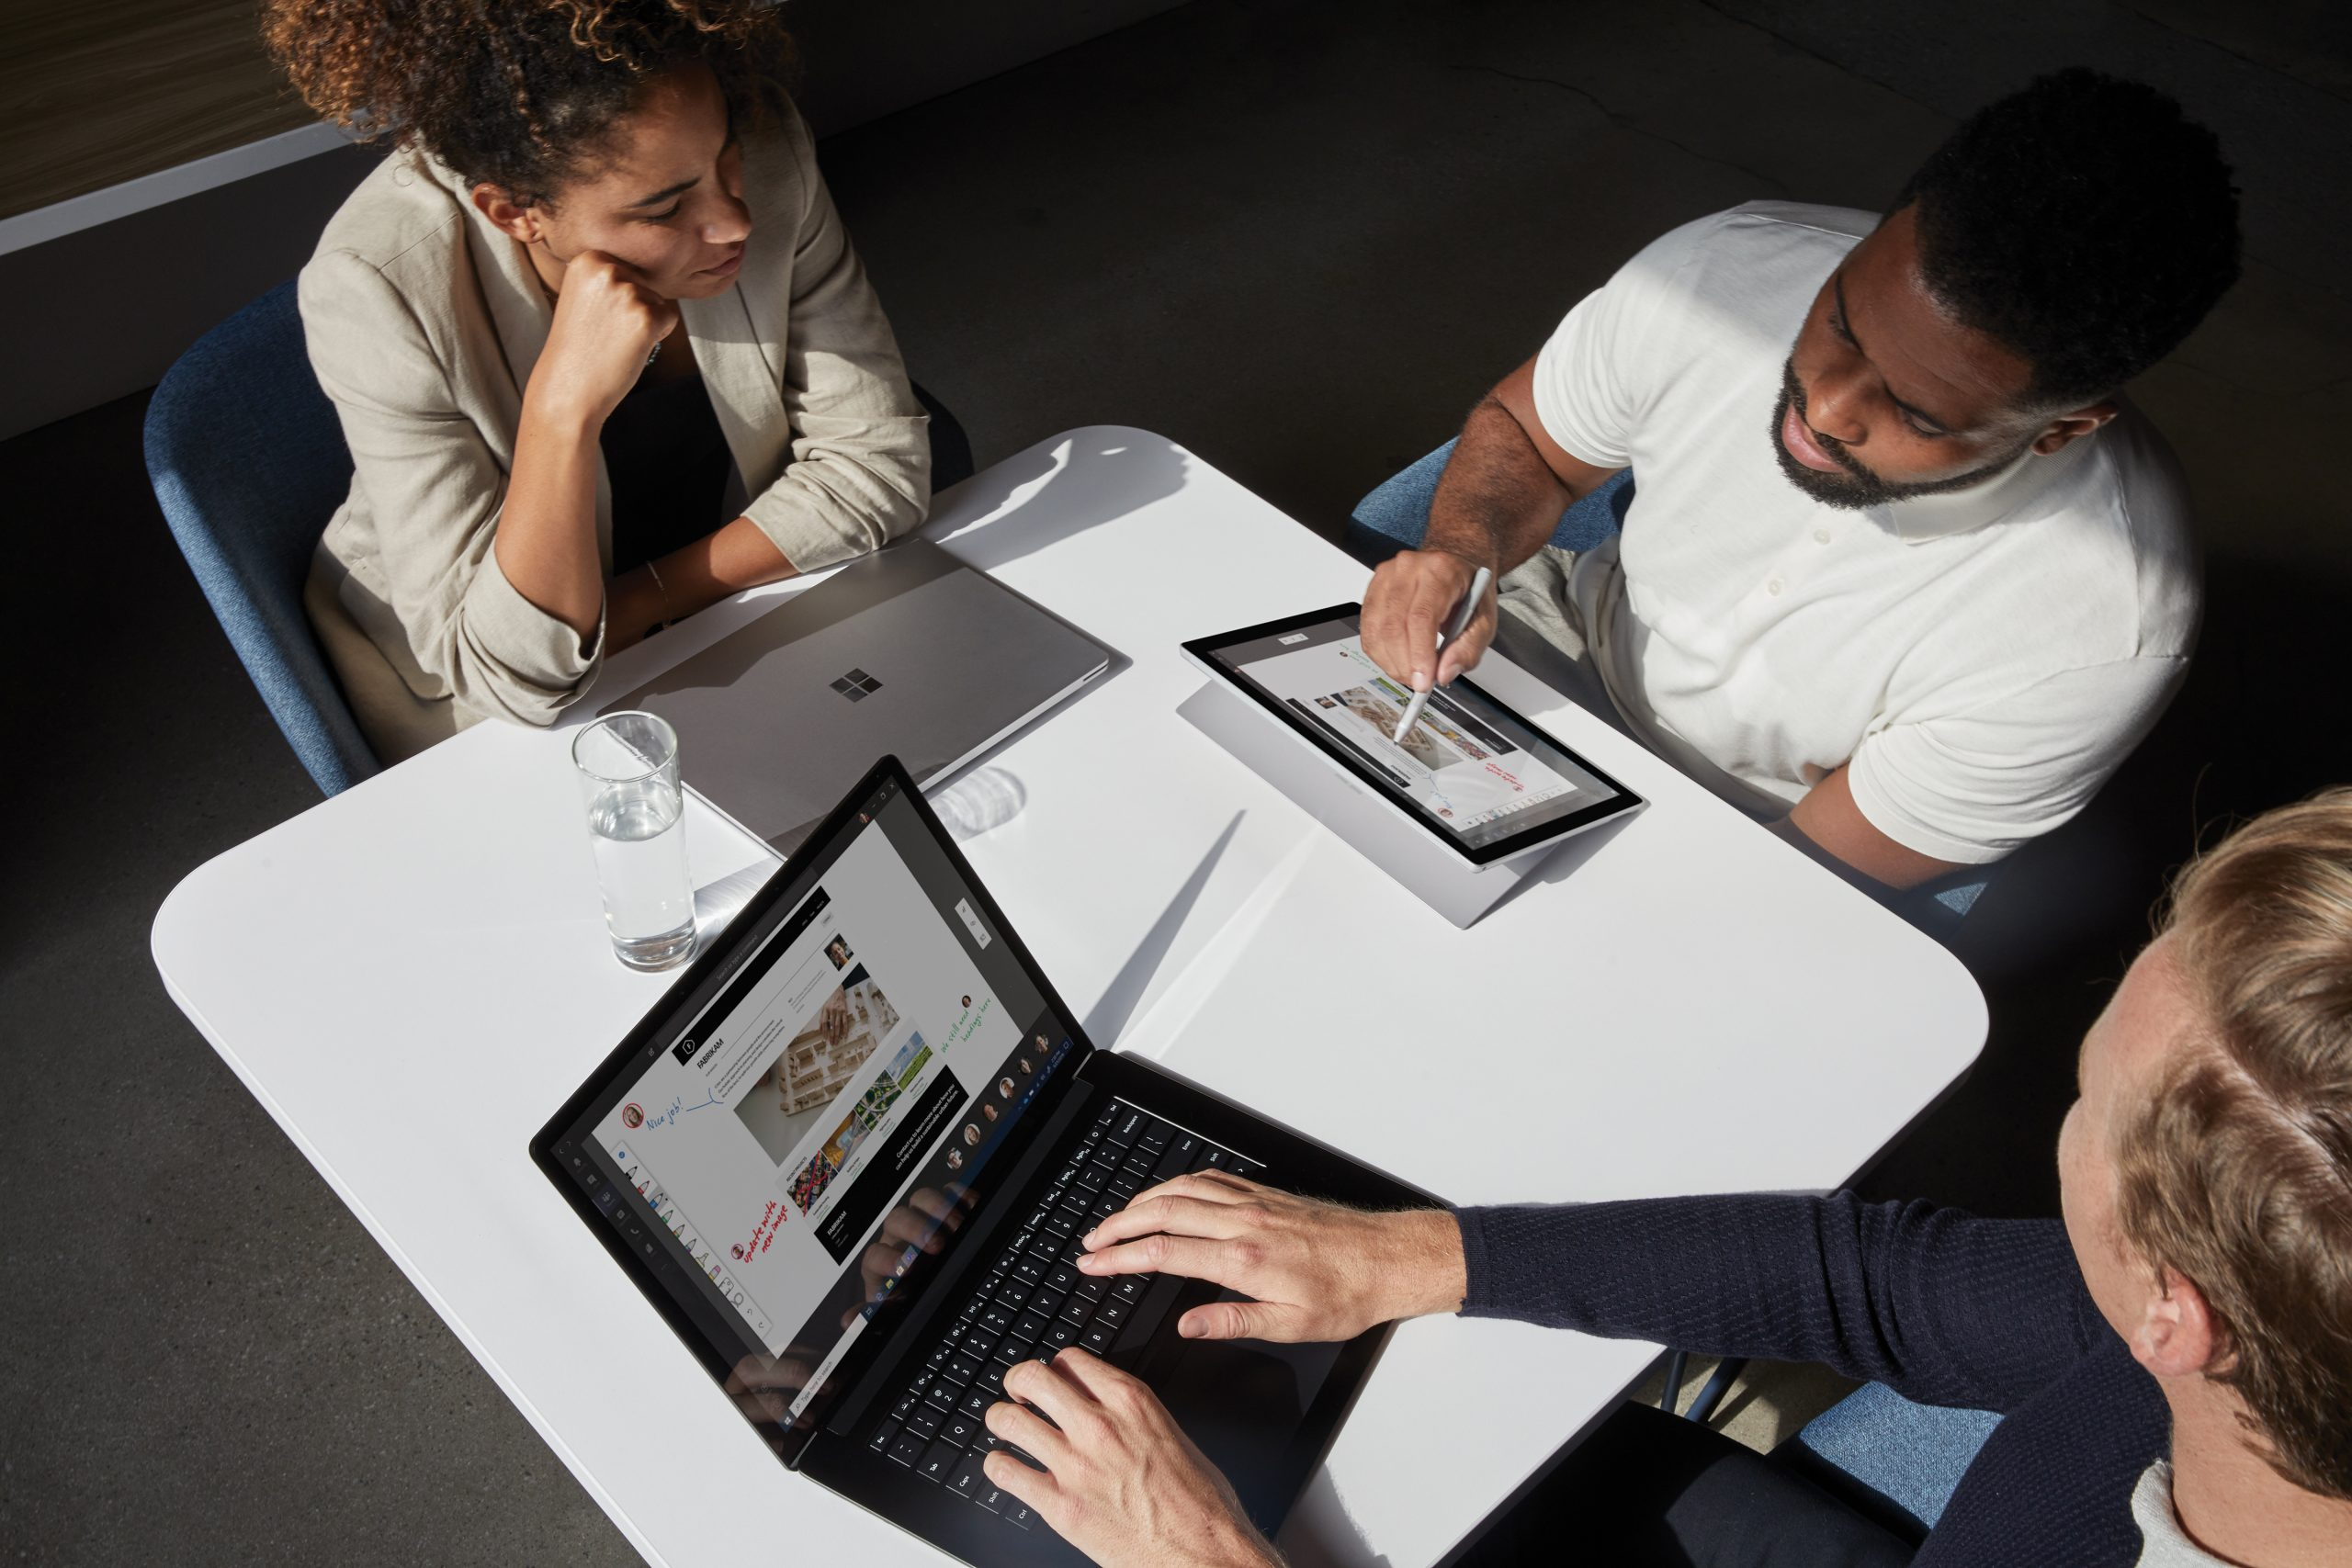 Team of 3 huddled around a small table with Microsoft Surface devices